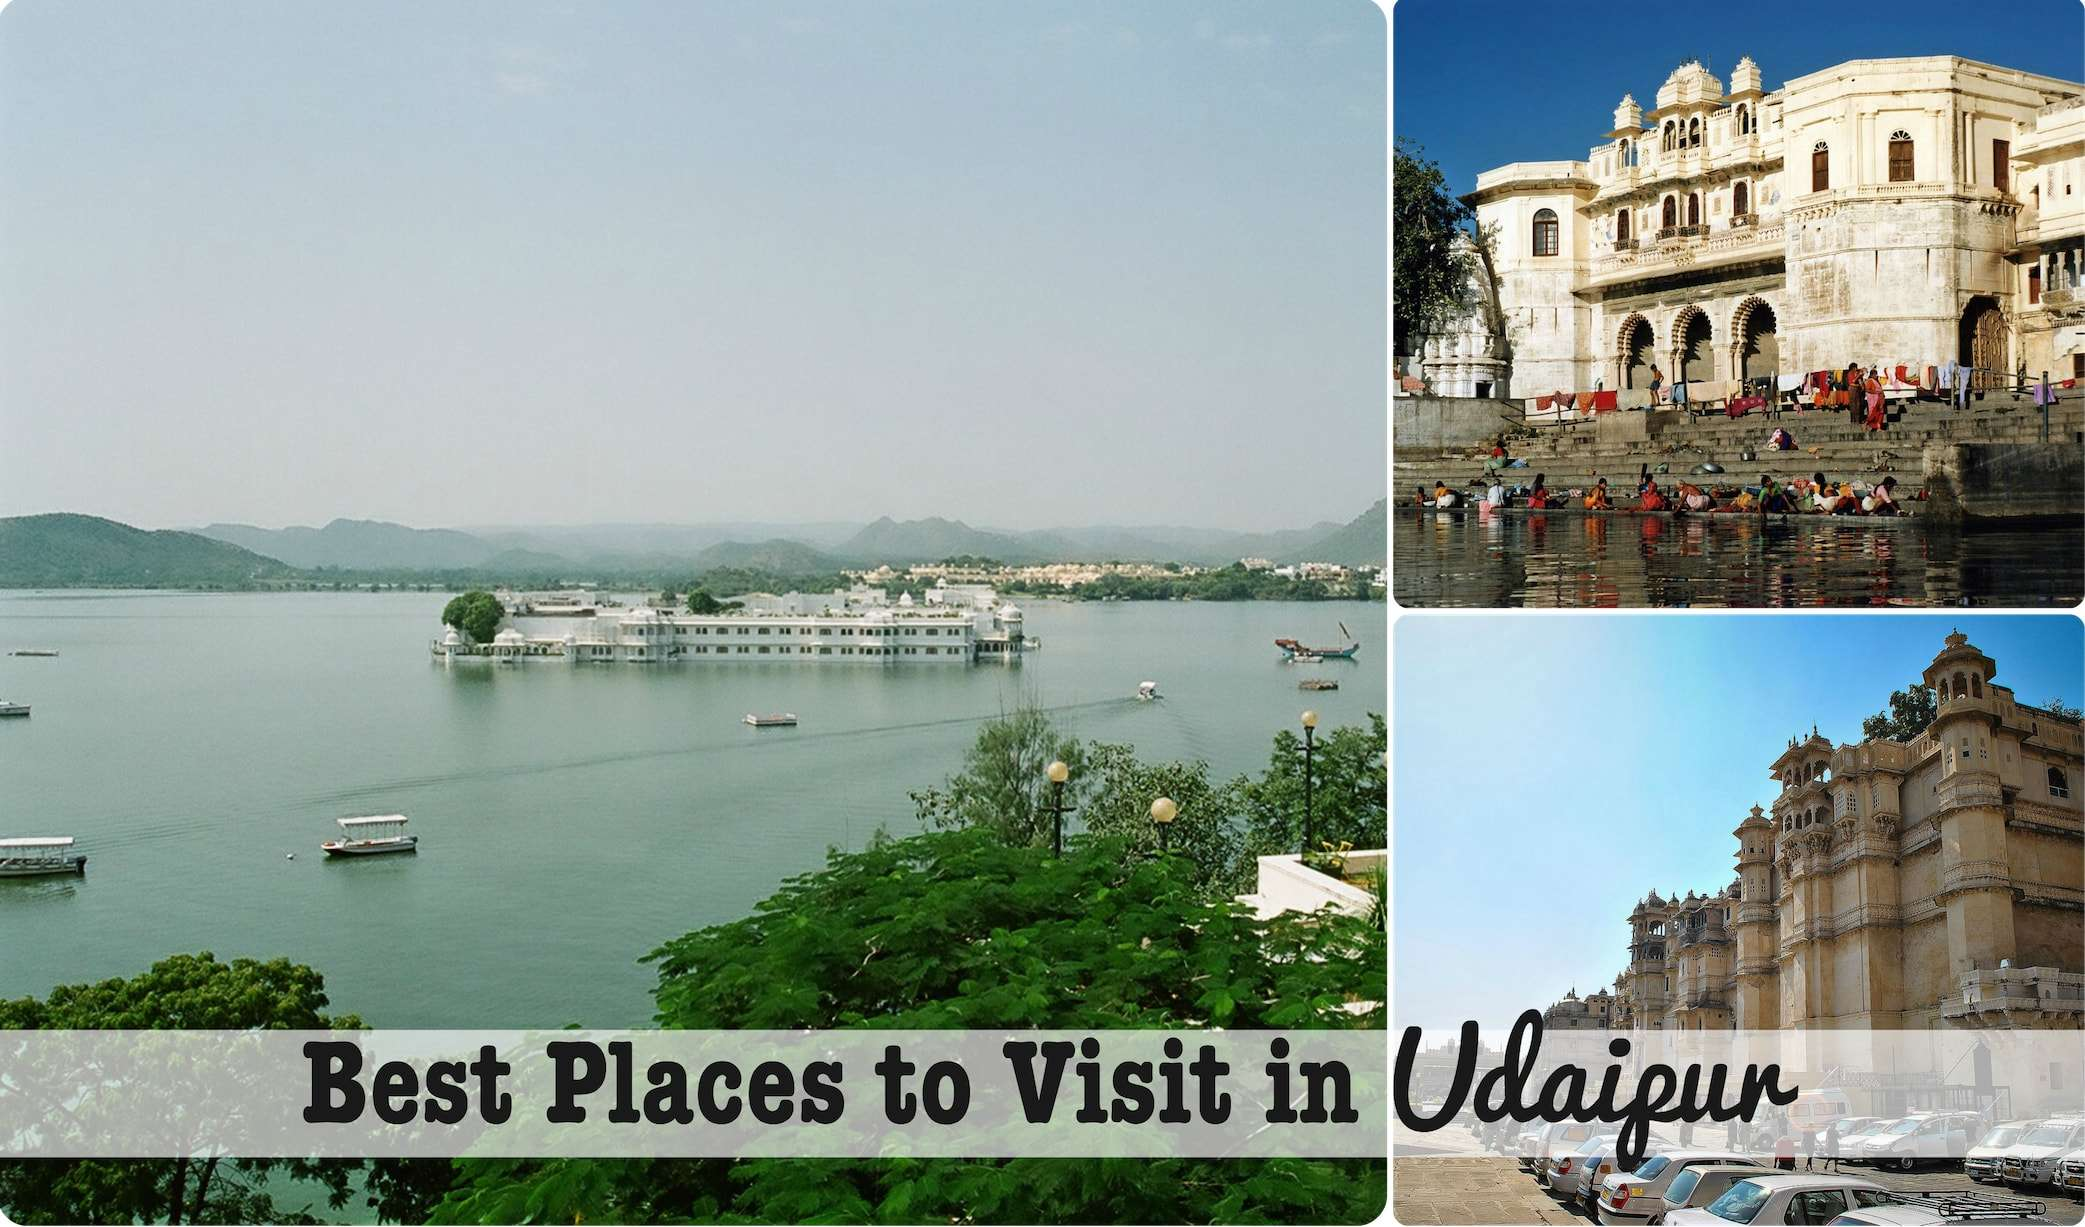 Best-places-to-visit-in-udaipur.jpg